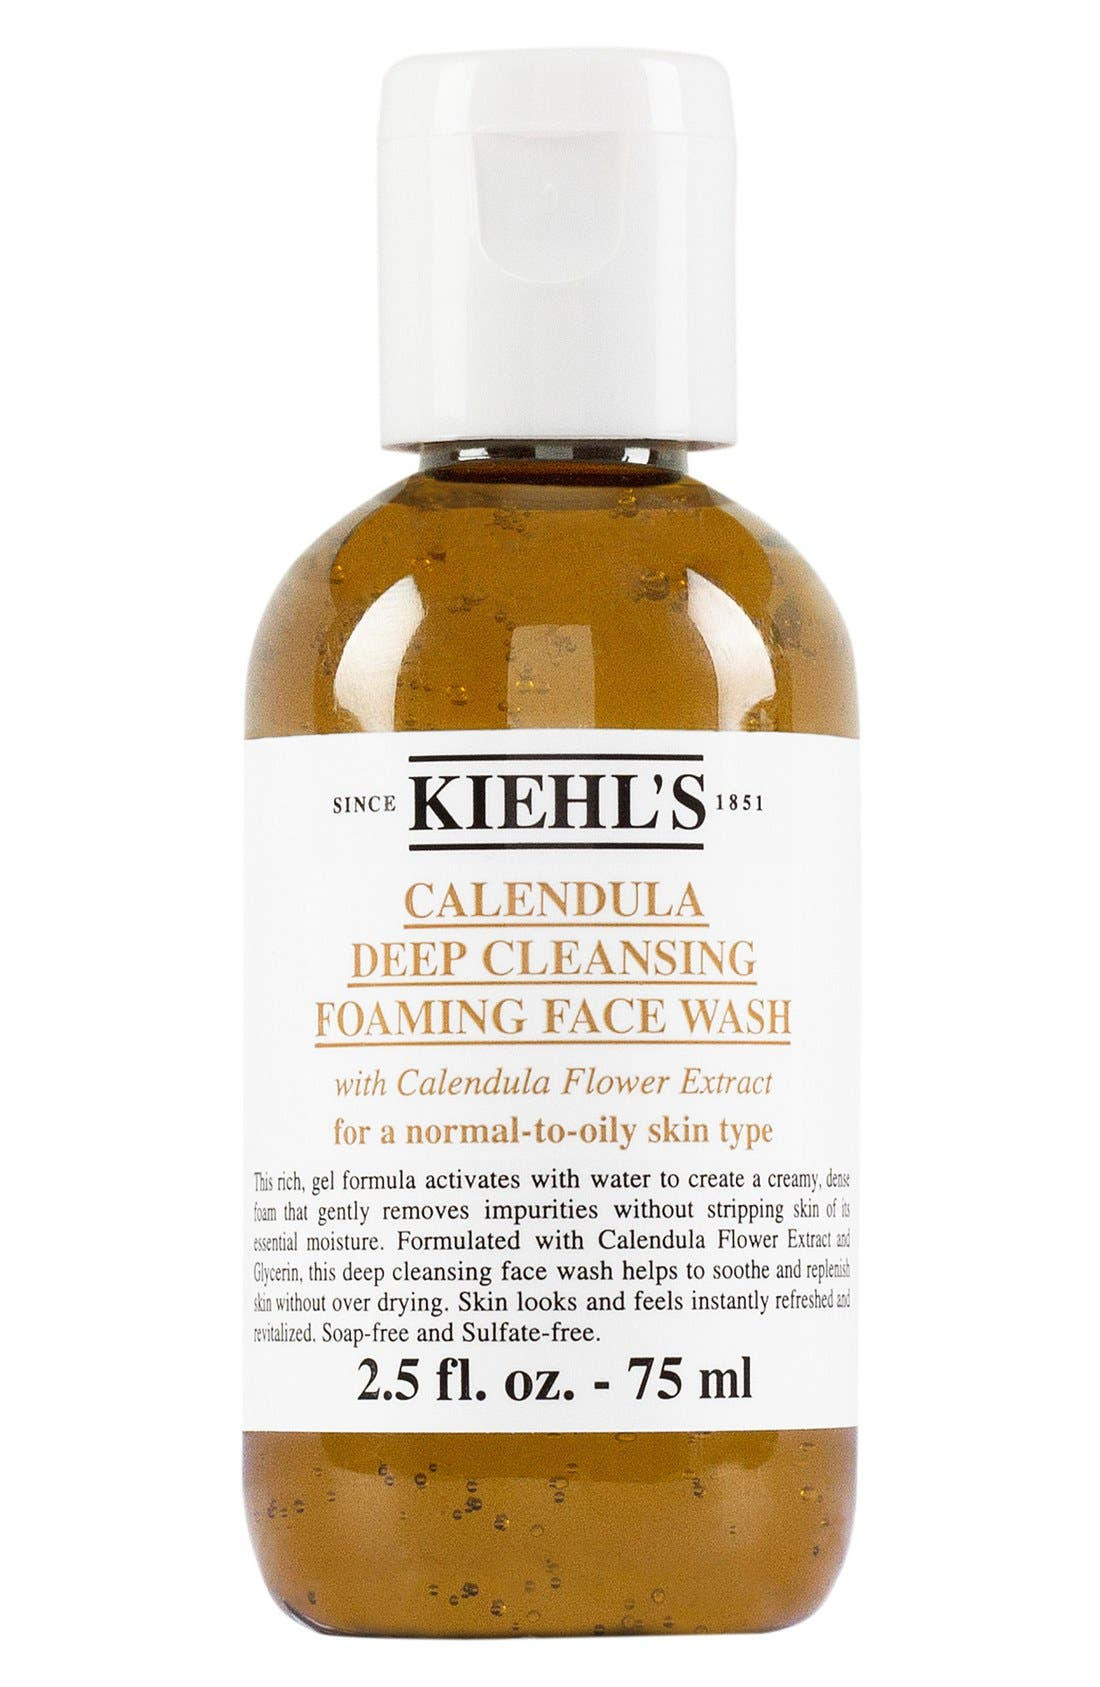 Calendula Deep Cleansing Foaming Face Wash for Normal-to-Oily Skin,                             Alternate thumbnail 7, color,                             NO COLOR